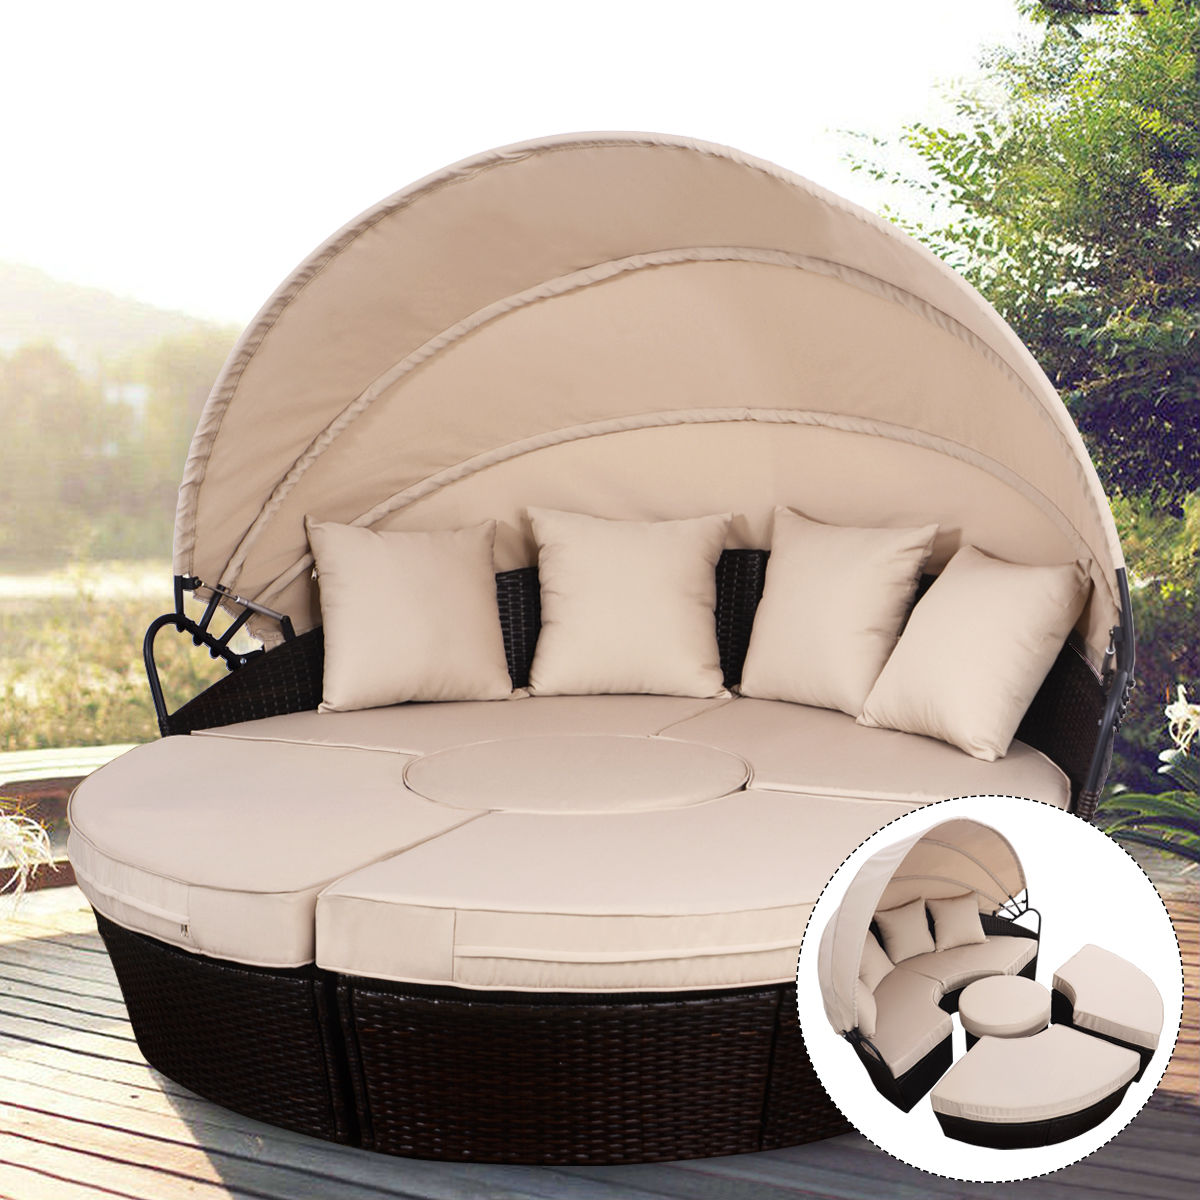 Costway Outdoor Mix Brown Rattan Patio Sofa Furniture Round Retractable Canopy Daybed & Outdoor Daybed : Outdoor Seating - Walmart.com